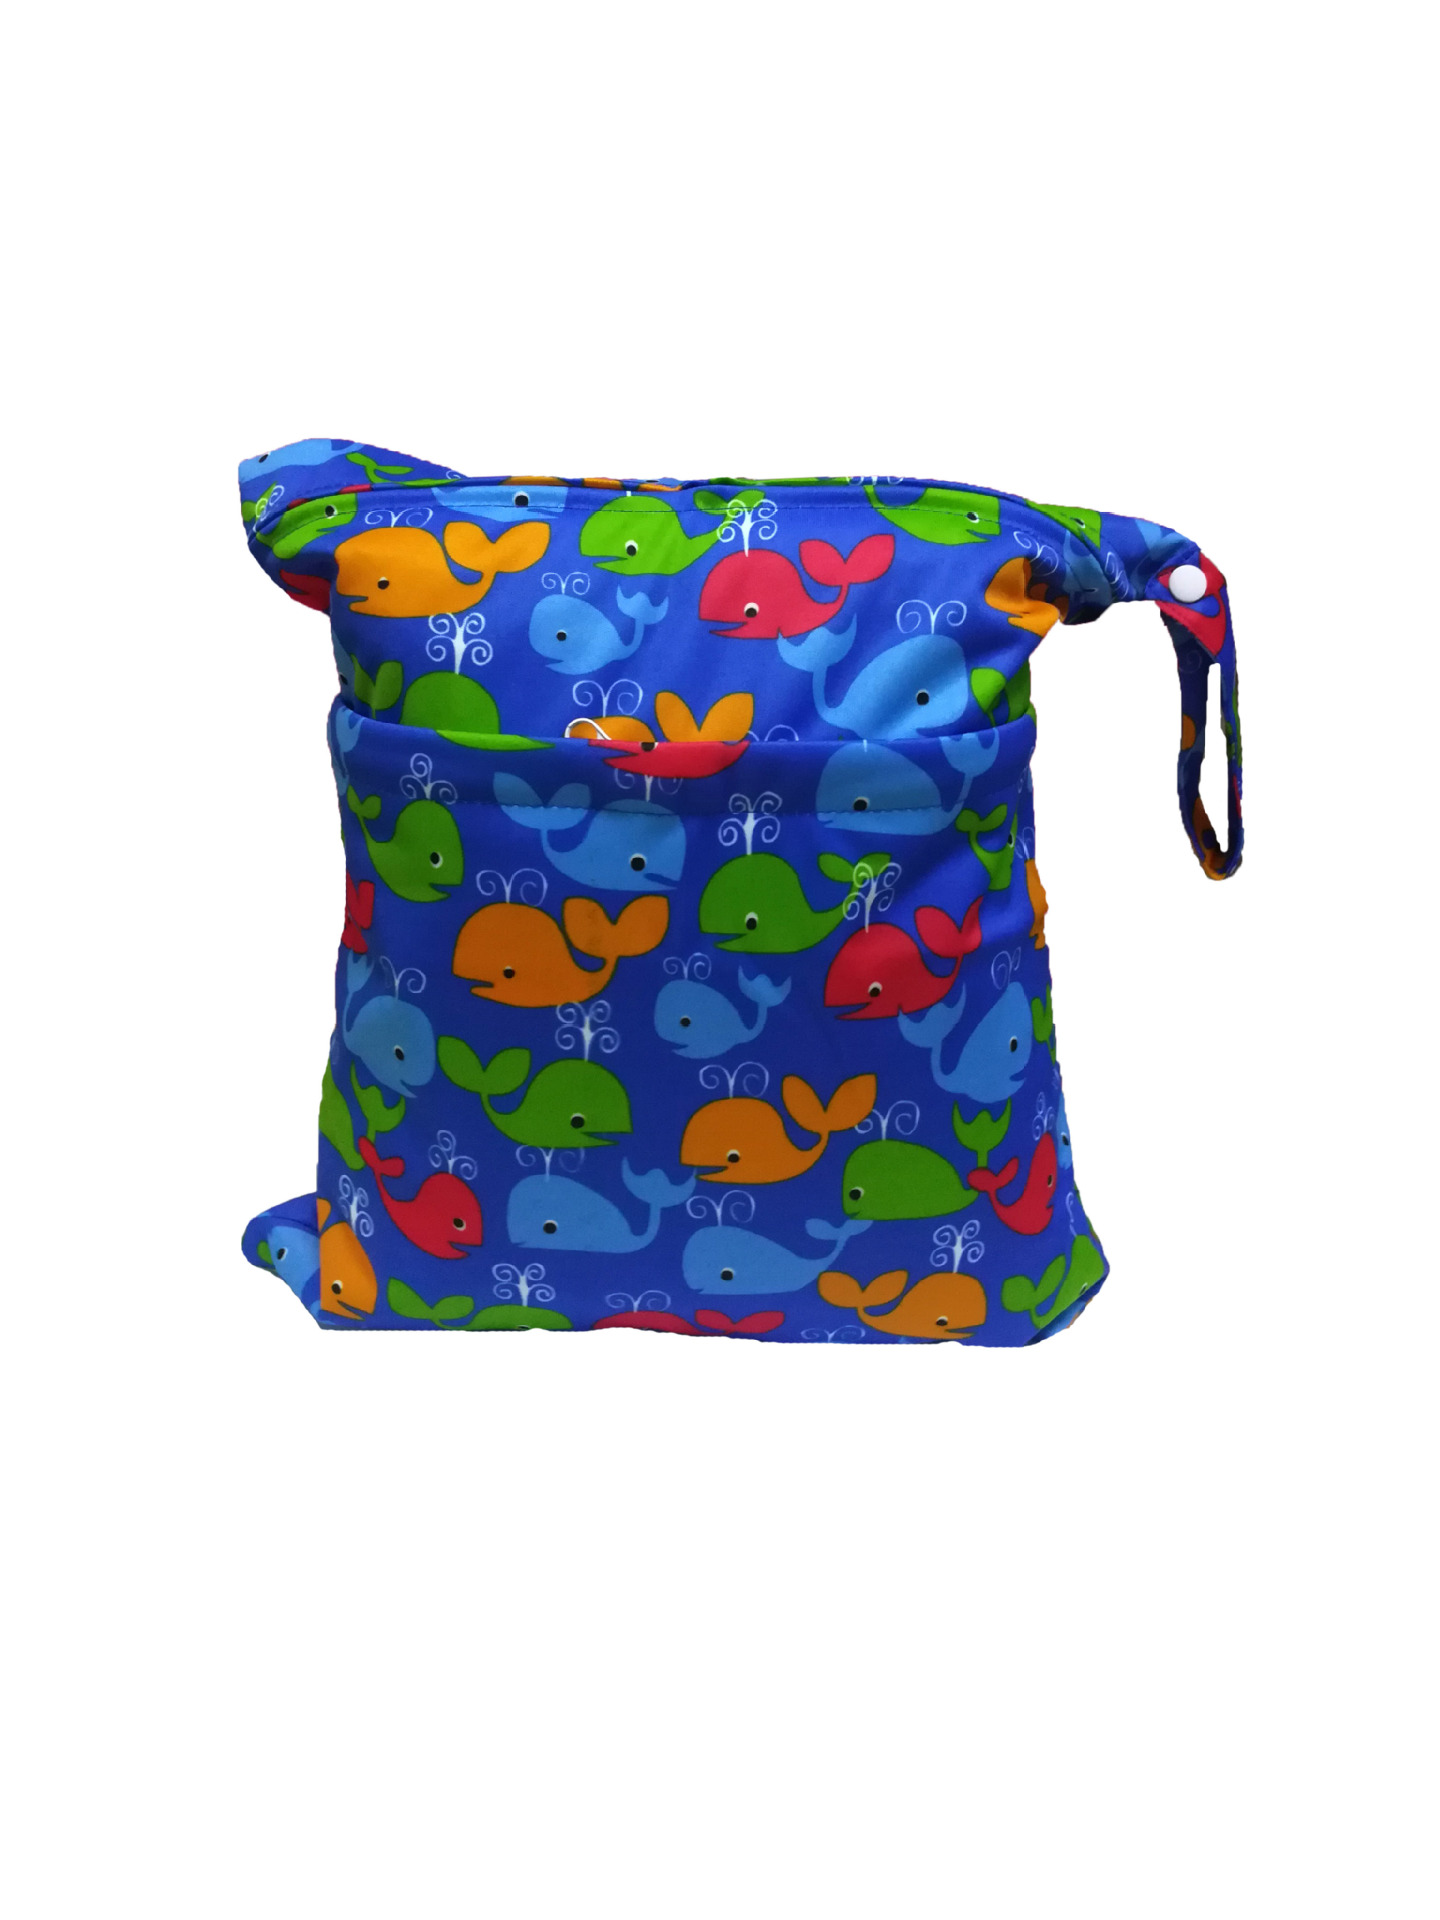 Digital Printing Double Zipper Diaper Pants Wet And Dry Bag/Waterproof Diaper Bag/Storage Bag/Washable Every Diaper Bag